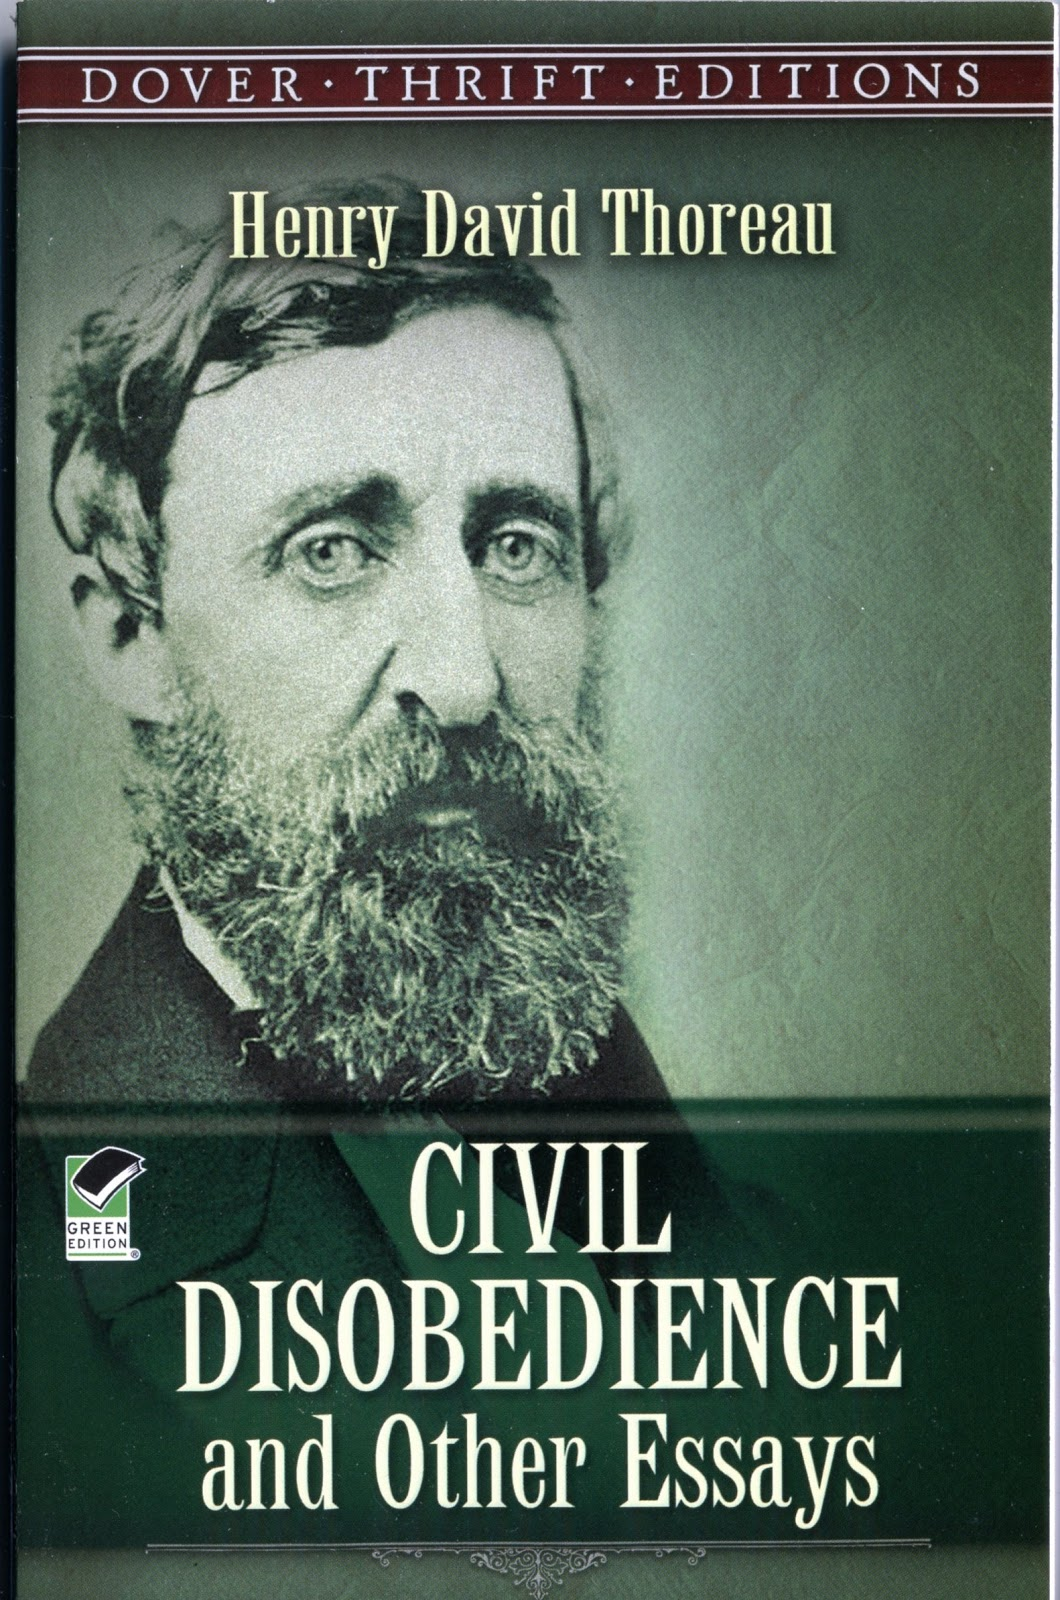 henry david thoreau civil disobedience quotes  advertisement